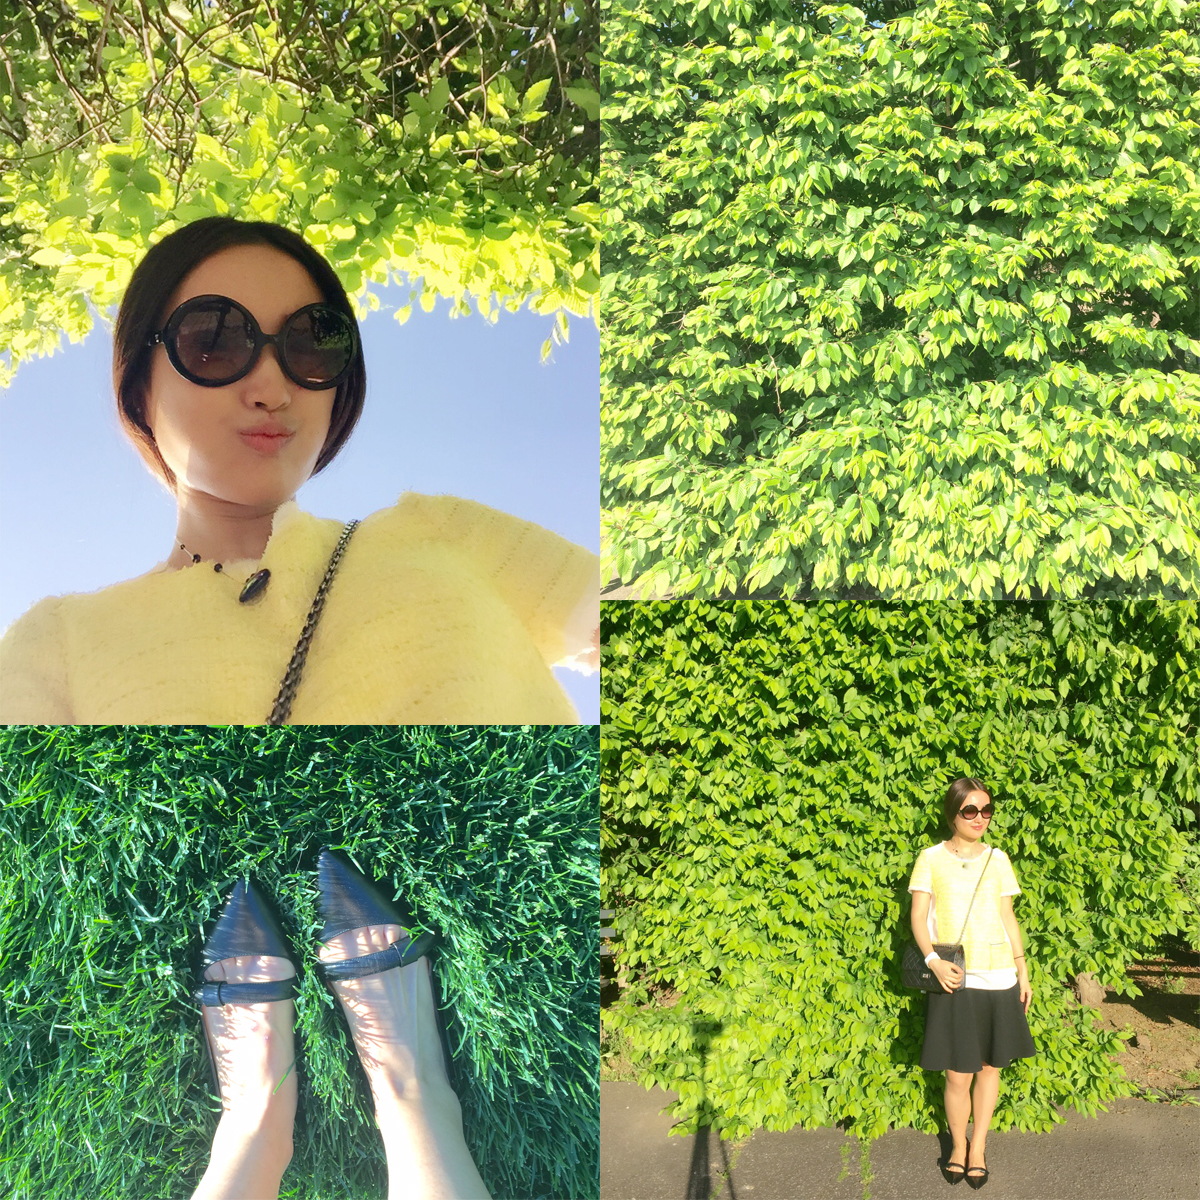 June Lemon Girl junelemongirl Fashion Style Blog blogger Neon yeloow tweed top silk chanel round sunglasses marc by marc jacobs black buckle flats strap black full circle wool skirt flared skirt chanel classic 2.55 New York Botanic Garden